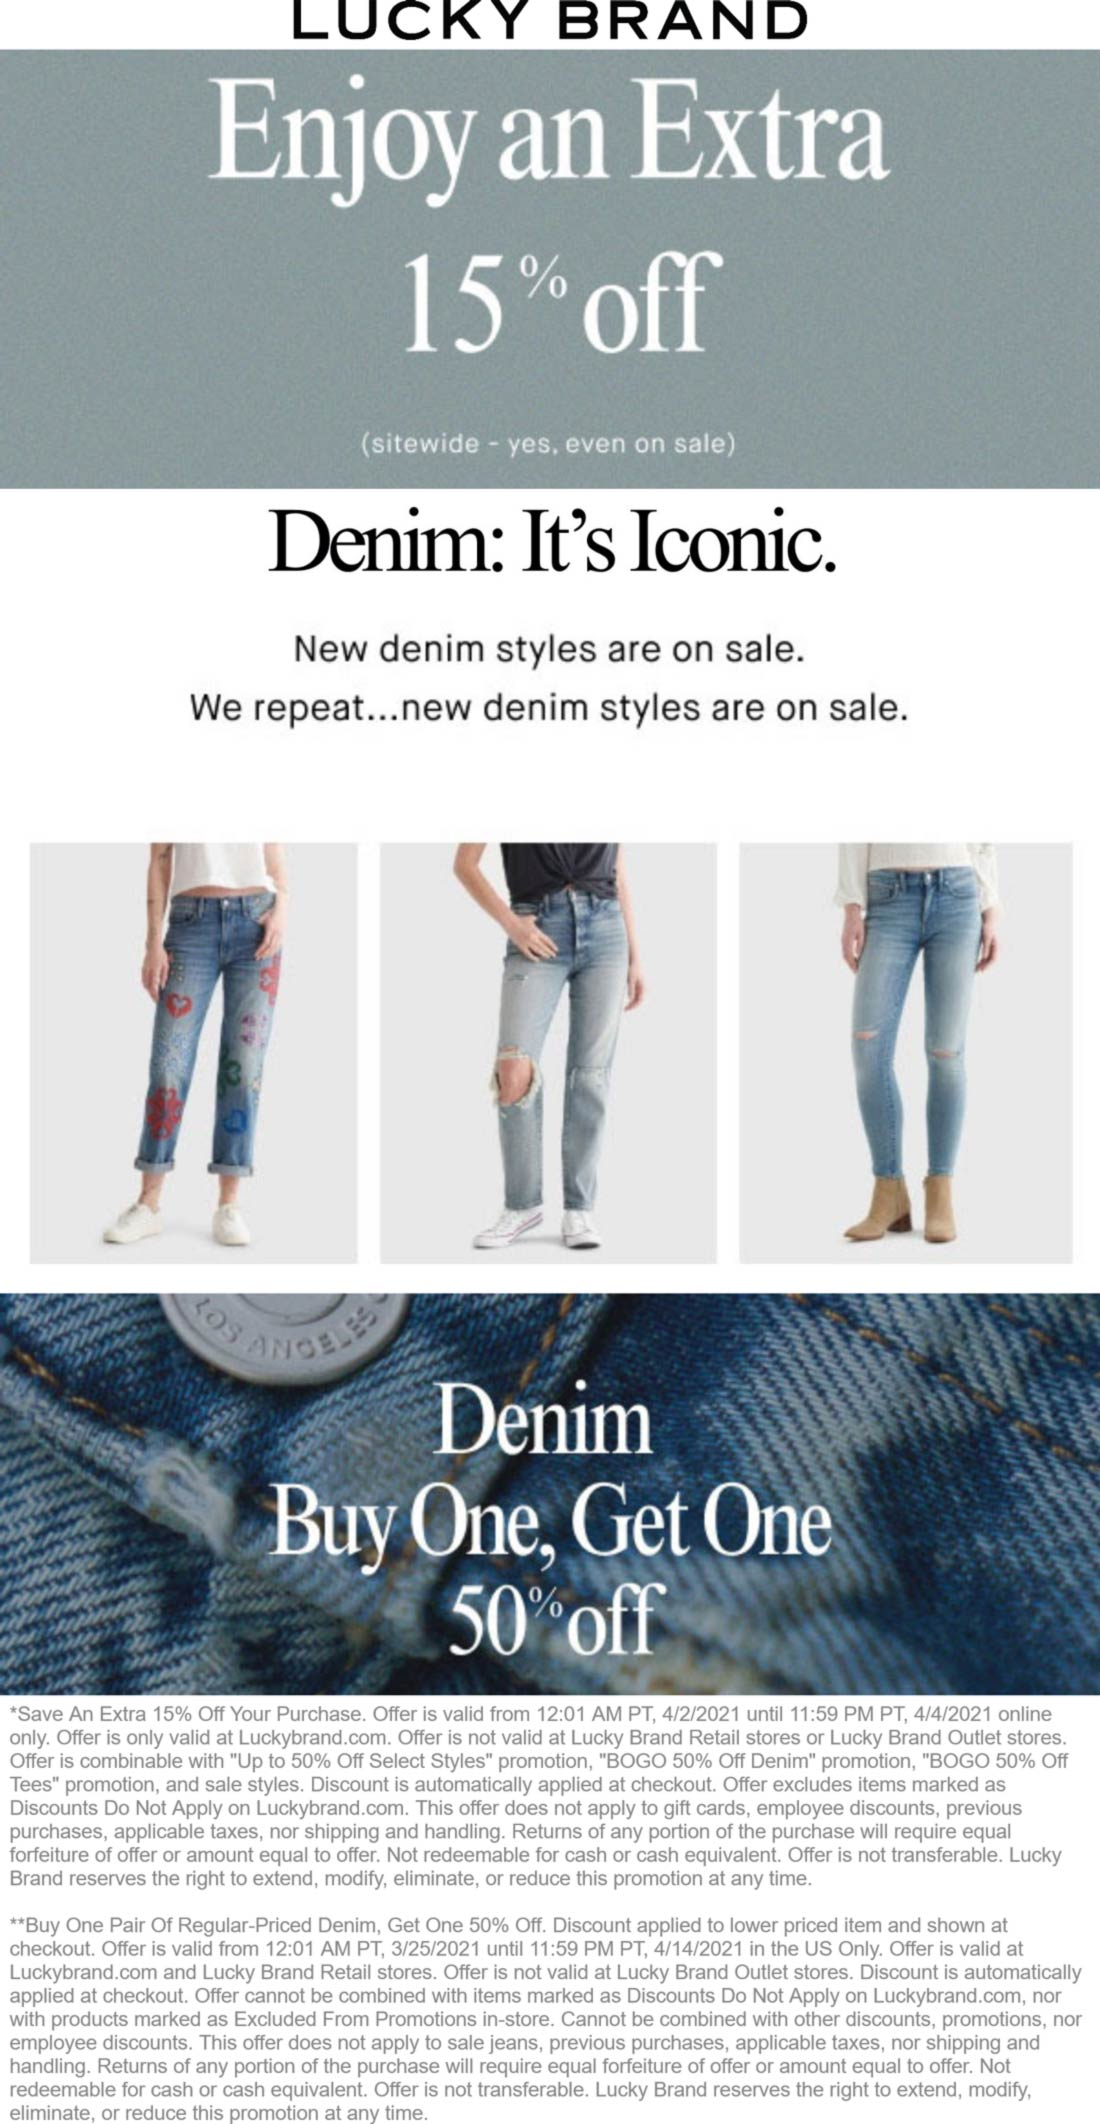 Lucky Brand stores Coupon  Extra 15% off everything & second denim 50% off online at Lucky Brand #luckybrand